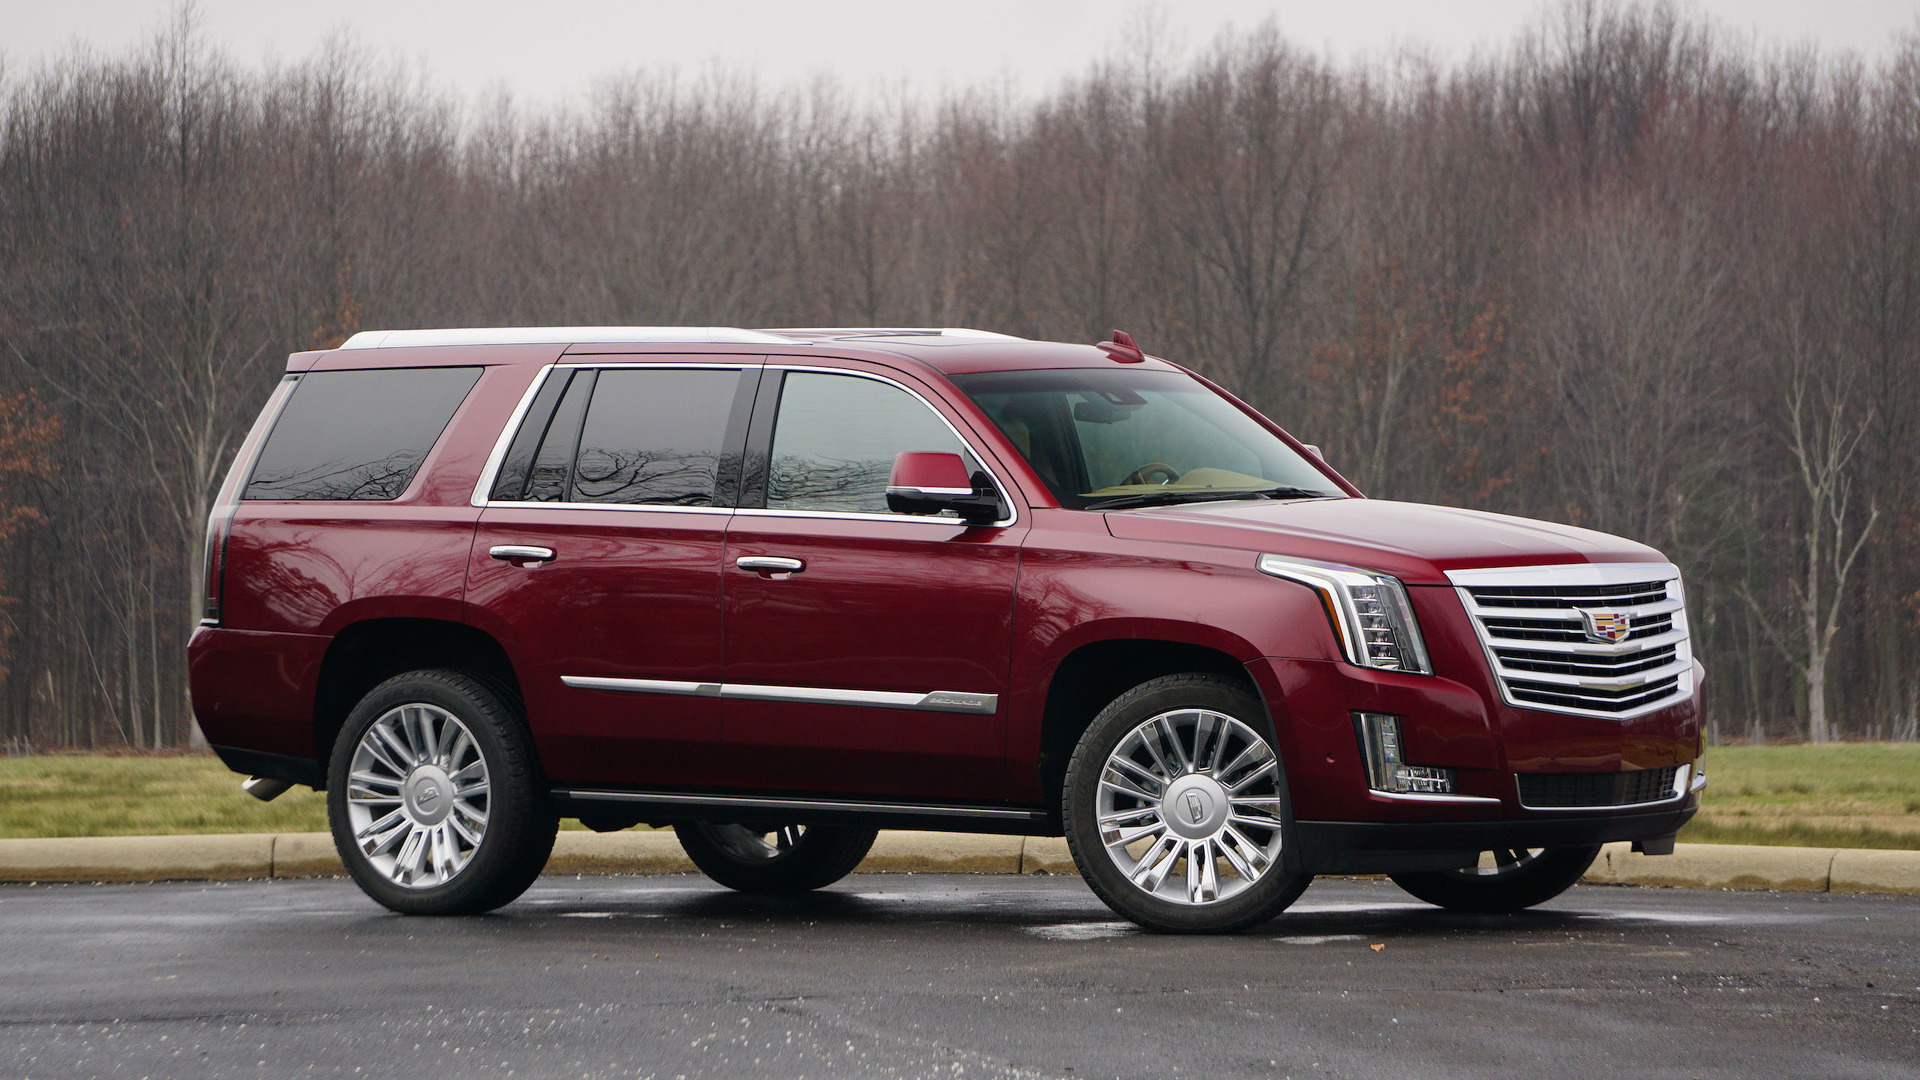 leisure haute of review escalade cadillac